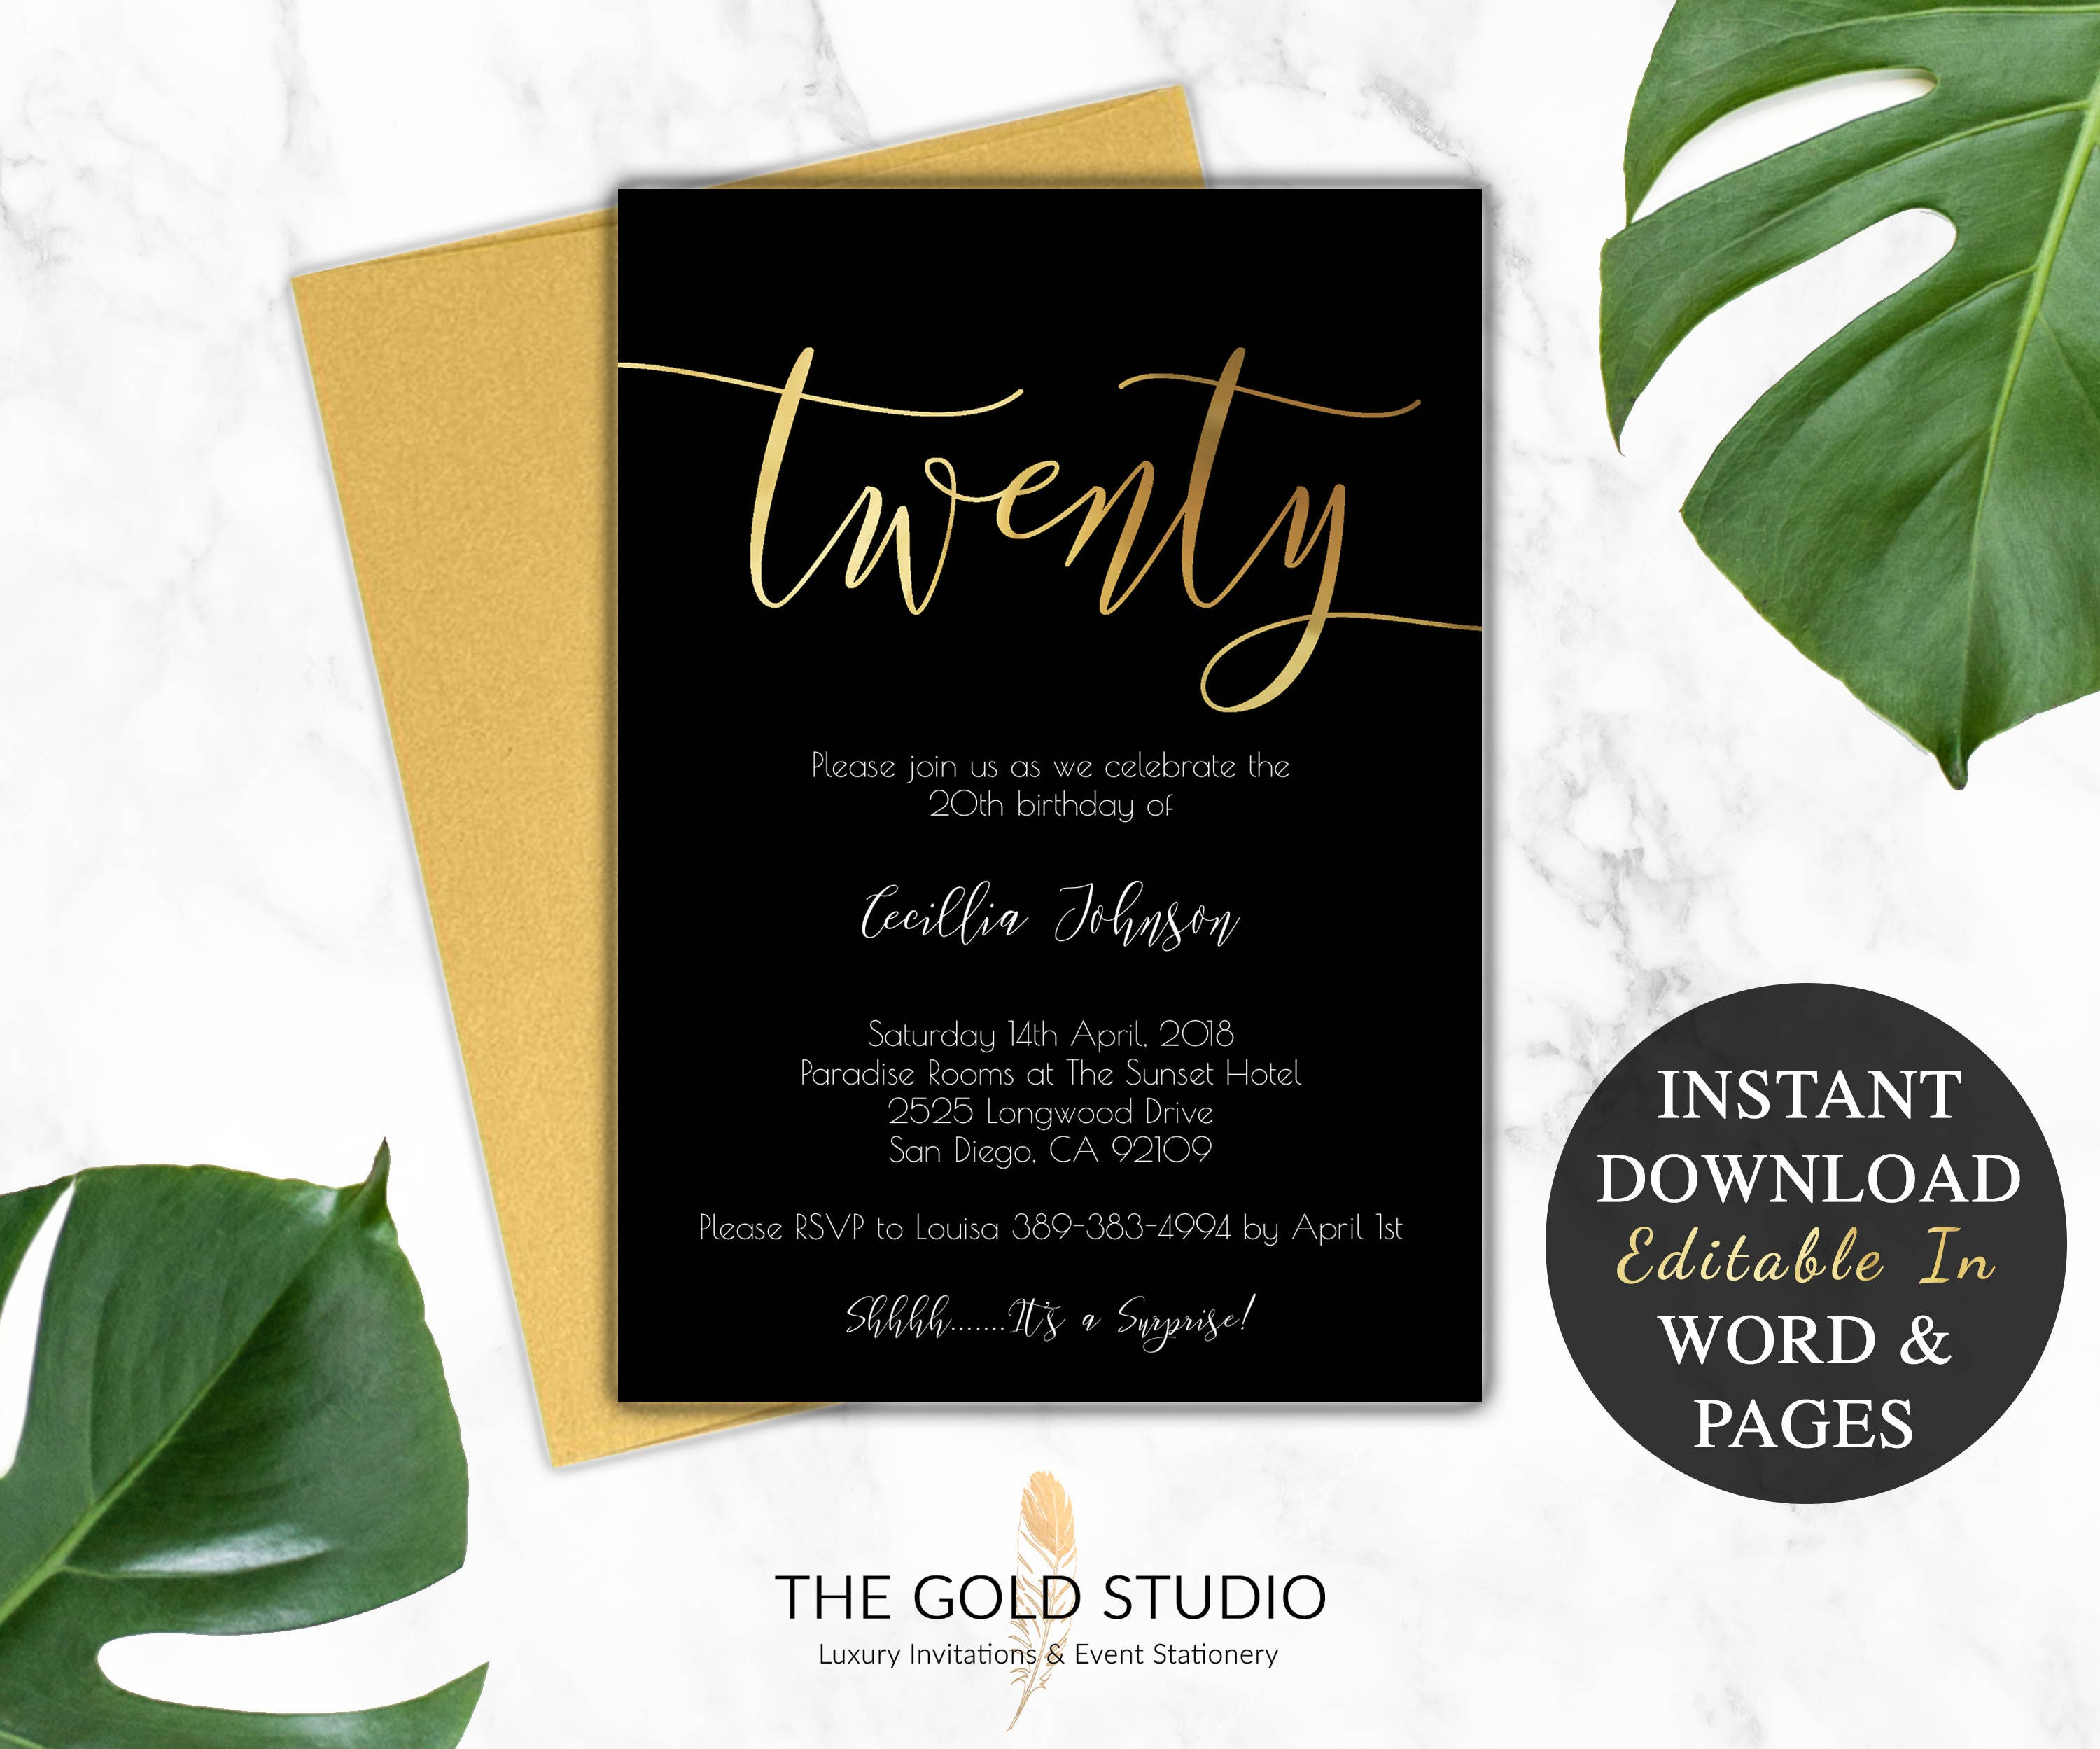 20th birthday invitation instant download birthday invite 20th birthday invitation instant download birthday invite printable gold black birthday invitation editable diy template invitation filmwisefo